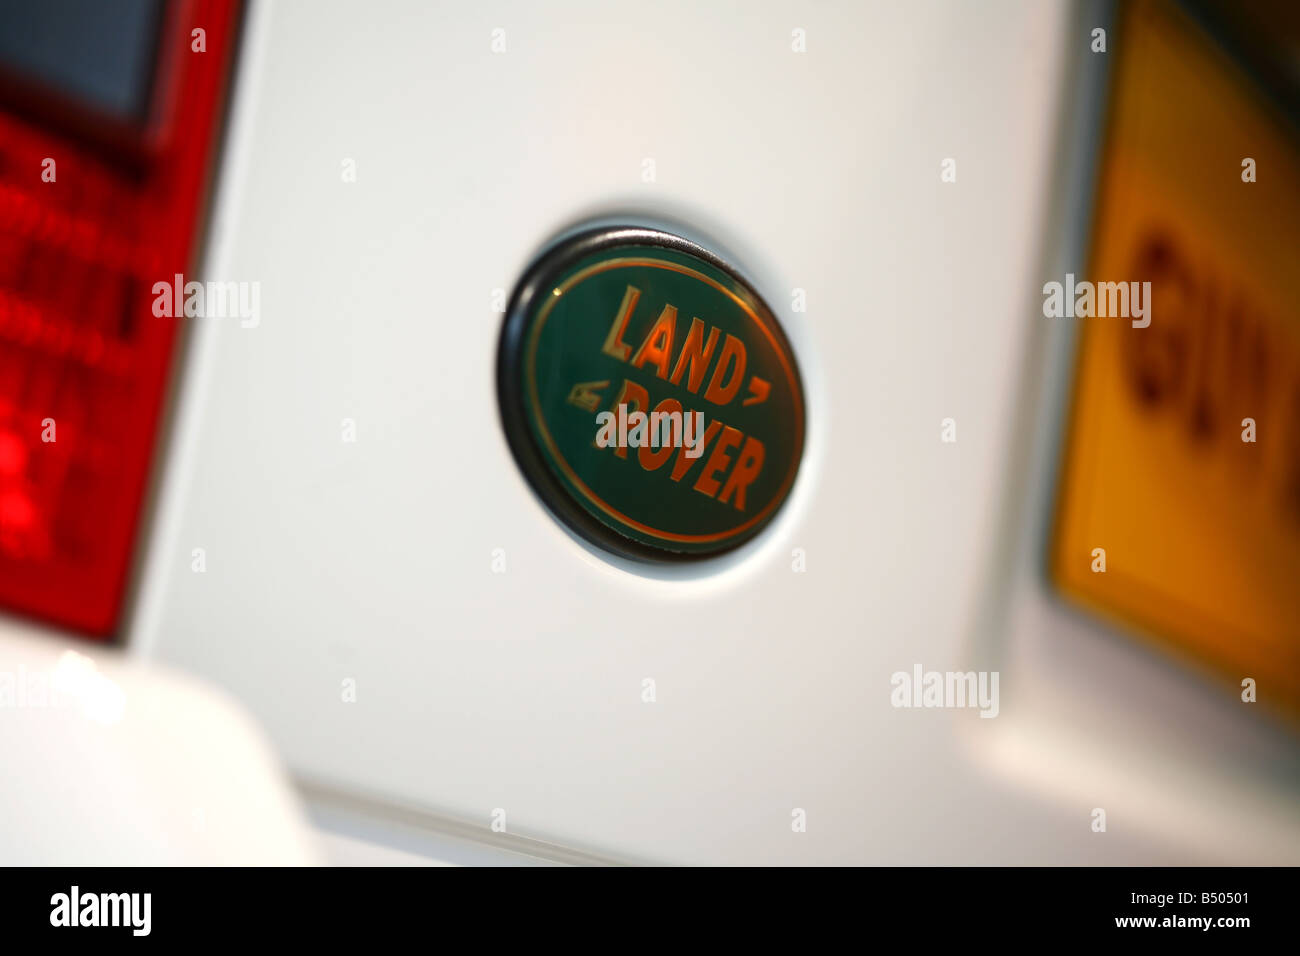 Land Rover Badge - Stock Image